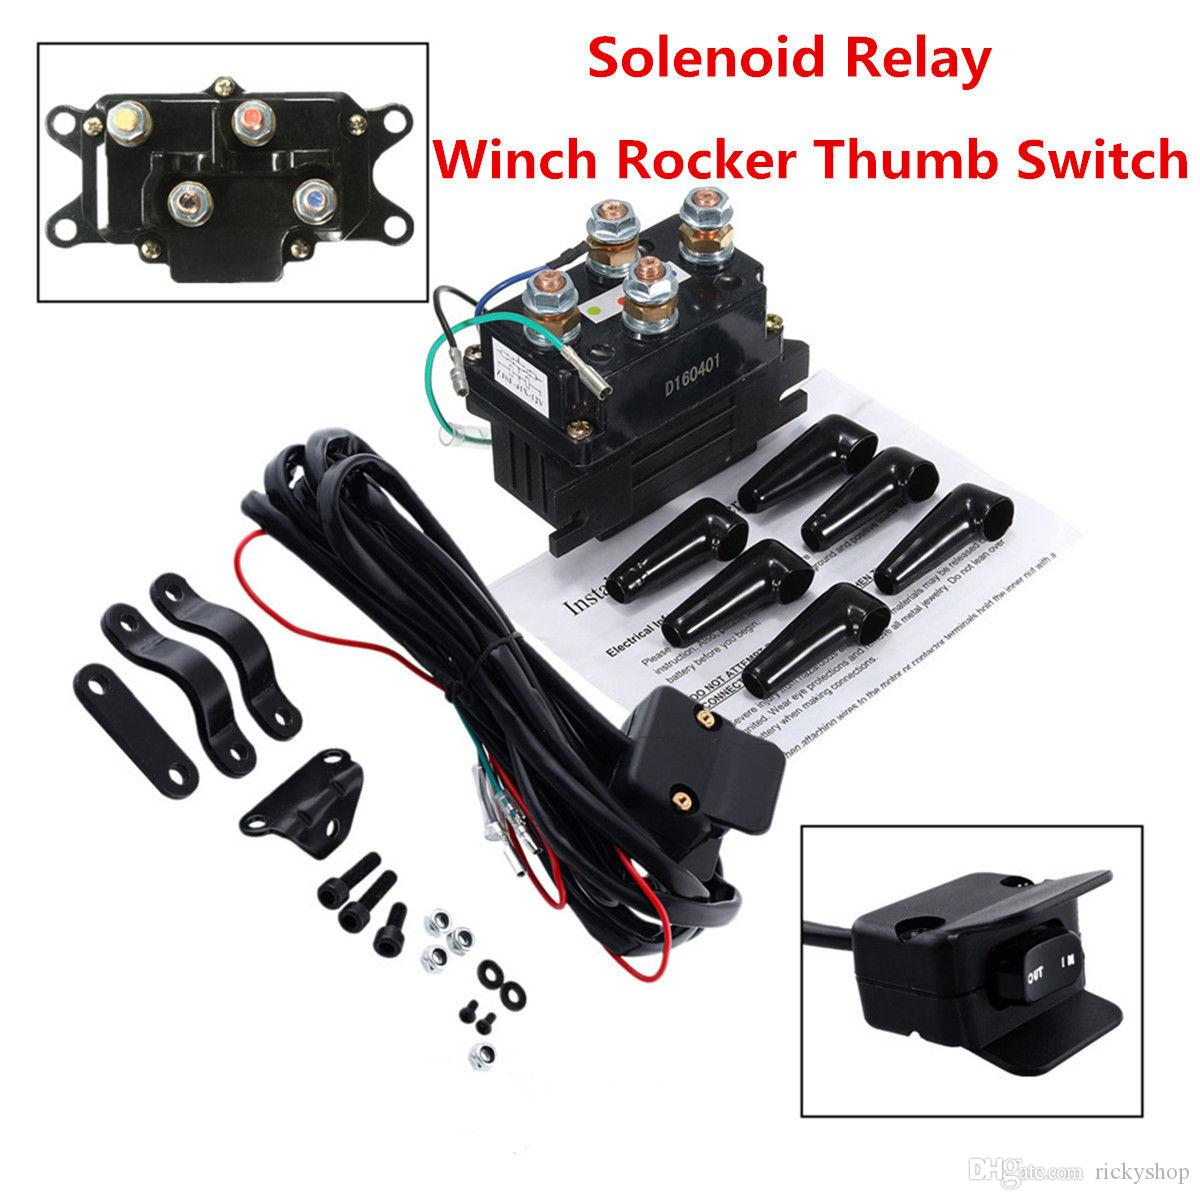 2018 Solenoid Relay Contactor Winch Rocker Thumb Switch For Atv Utv Polaris 800 Wiring 1000 From Rickyshop 3016